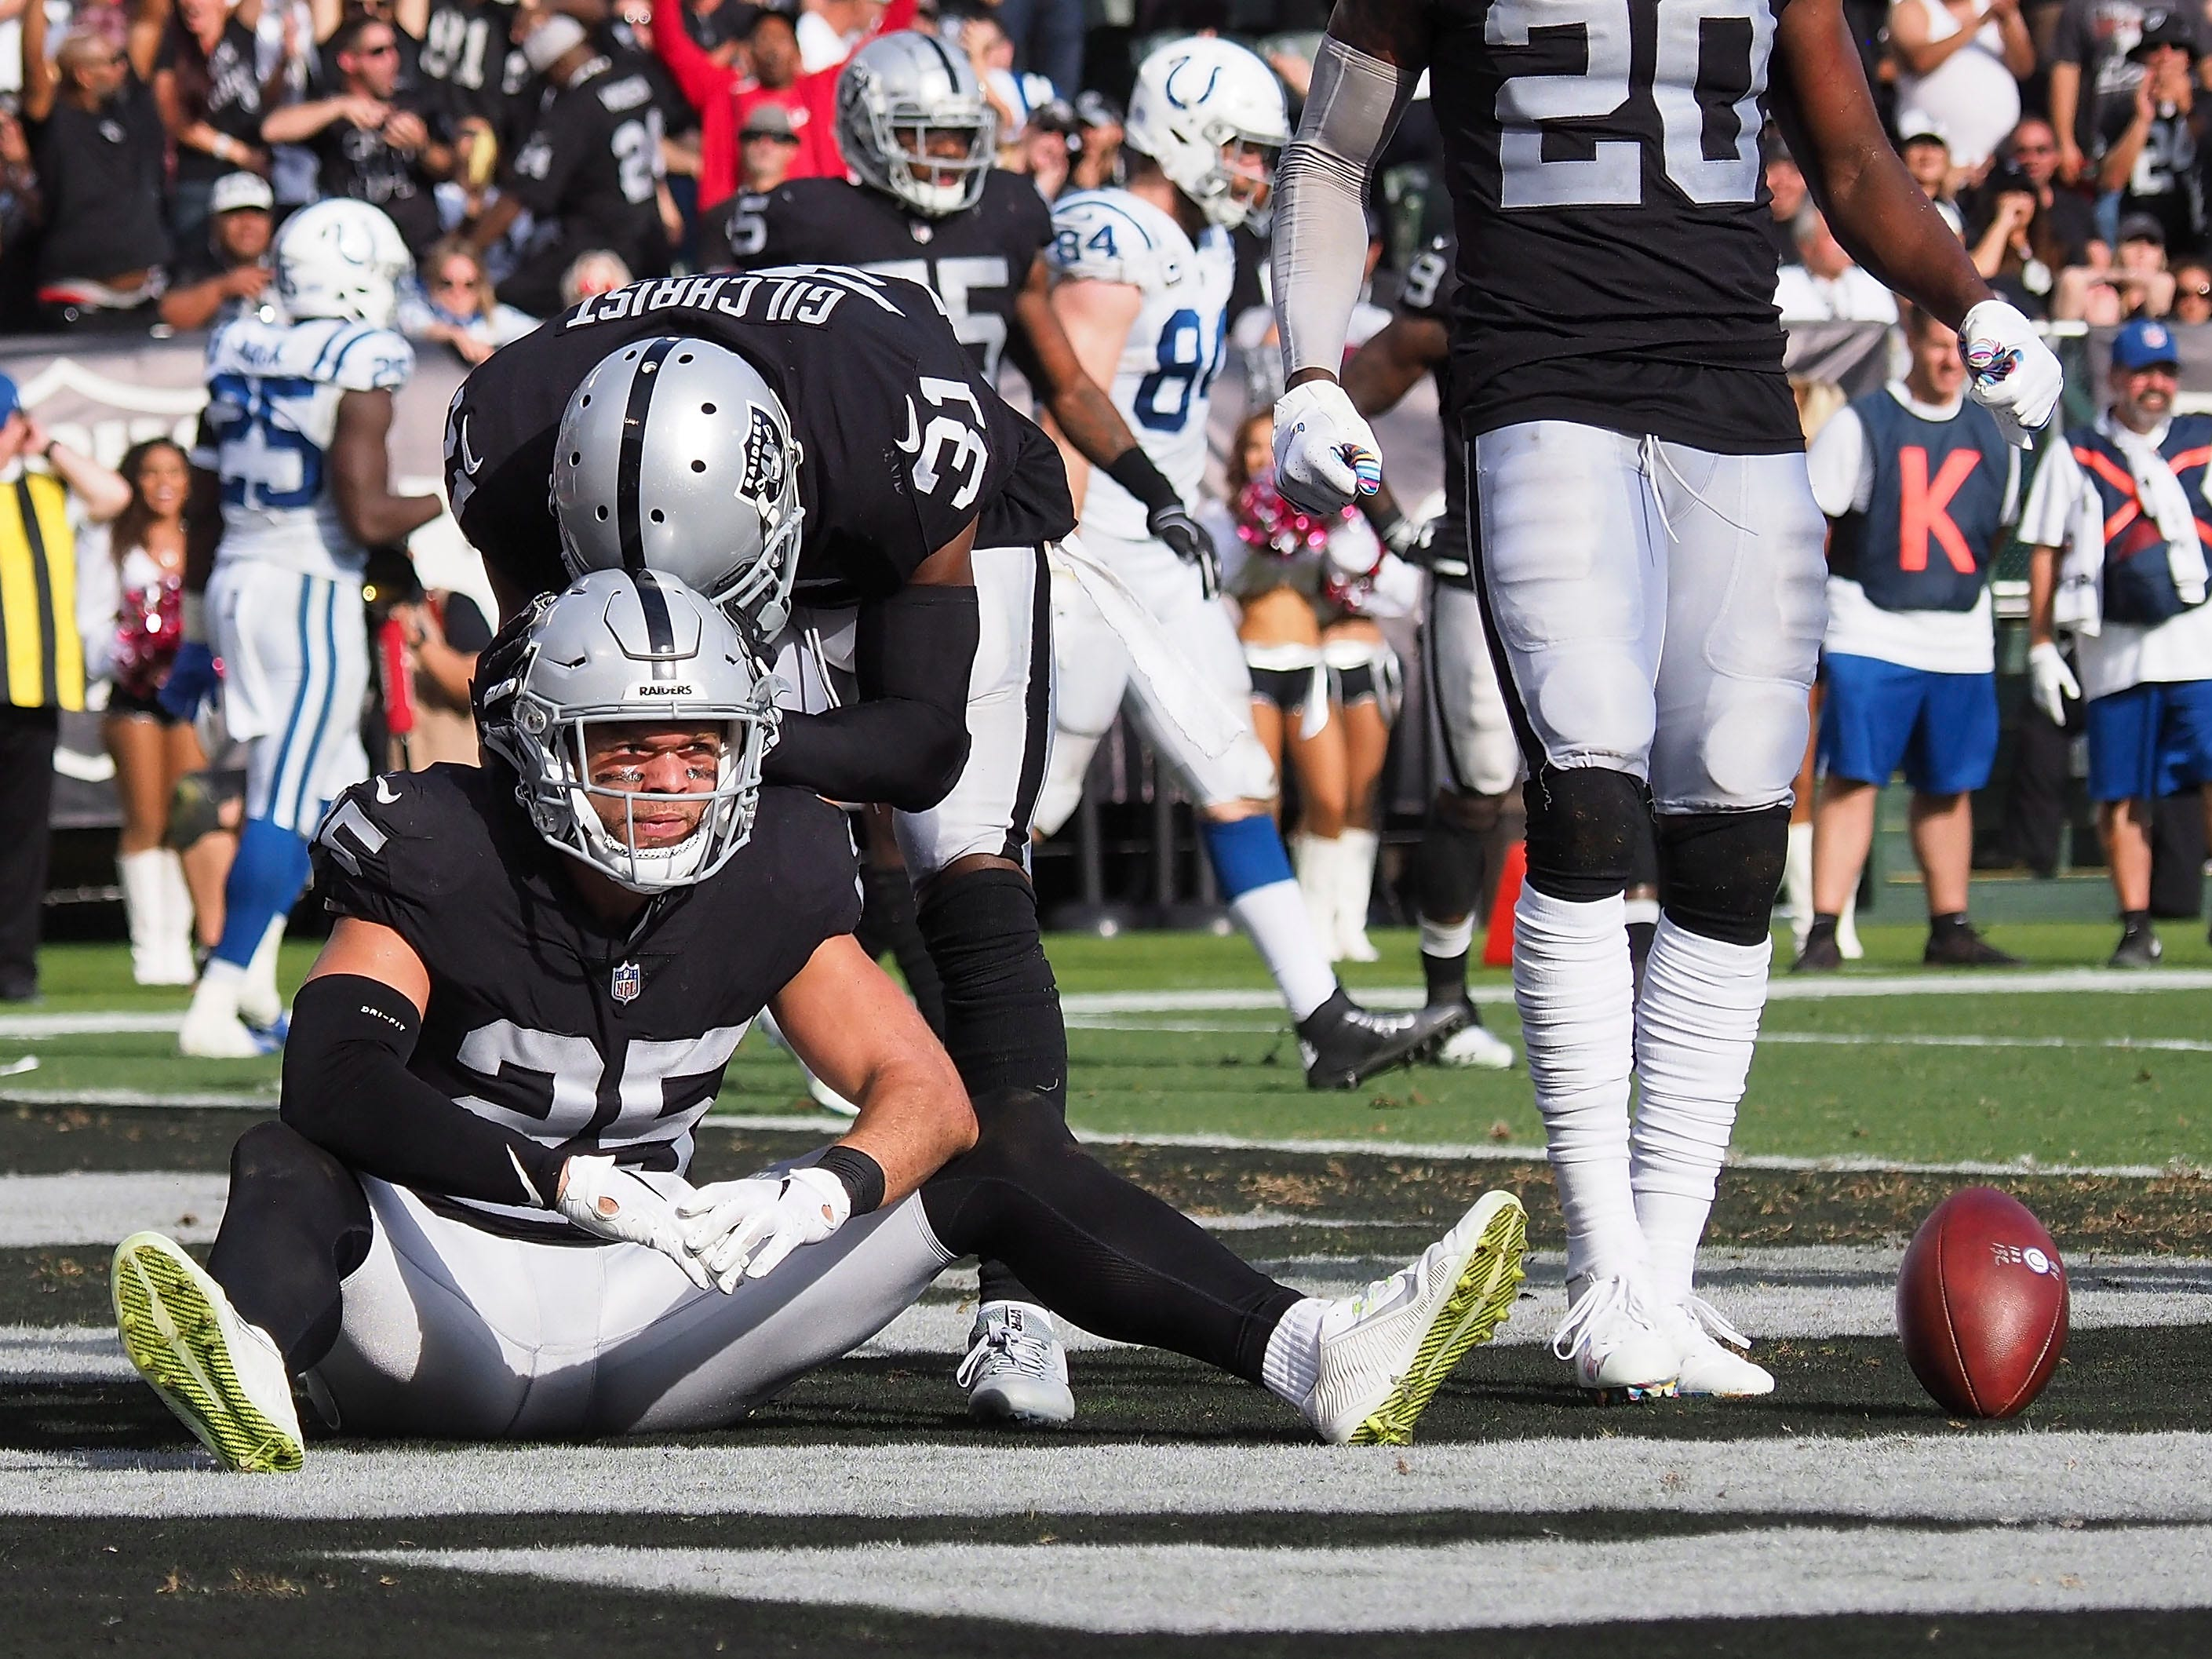 32. Raiders (32): Treat — intentionally gutted team still trying to serve up what may be one final victory to Oakland fan base that may have to say goodbye after season.